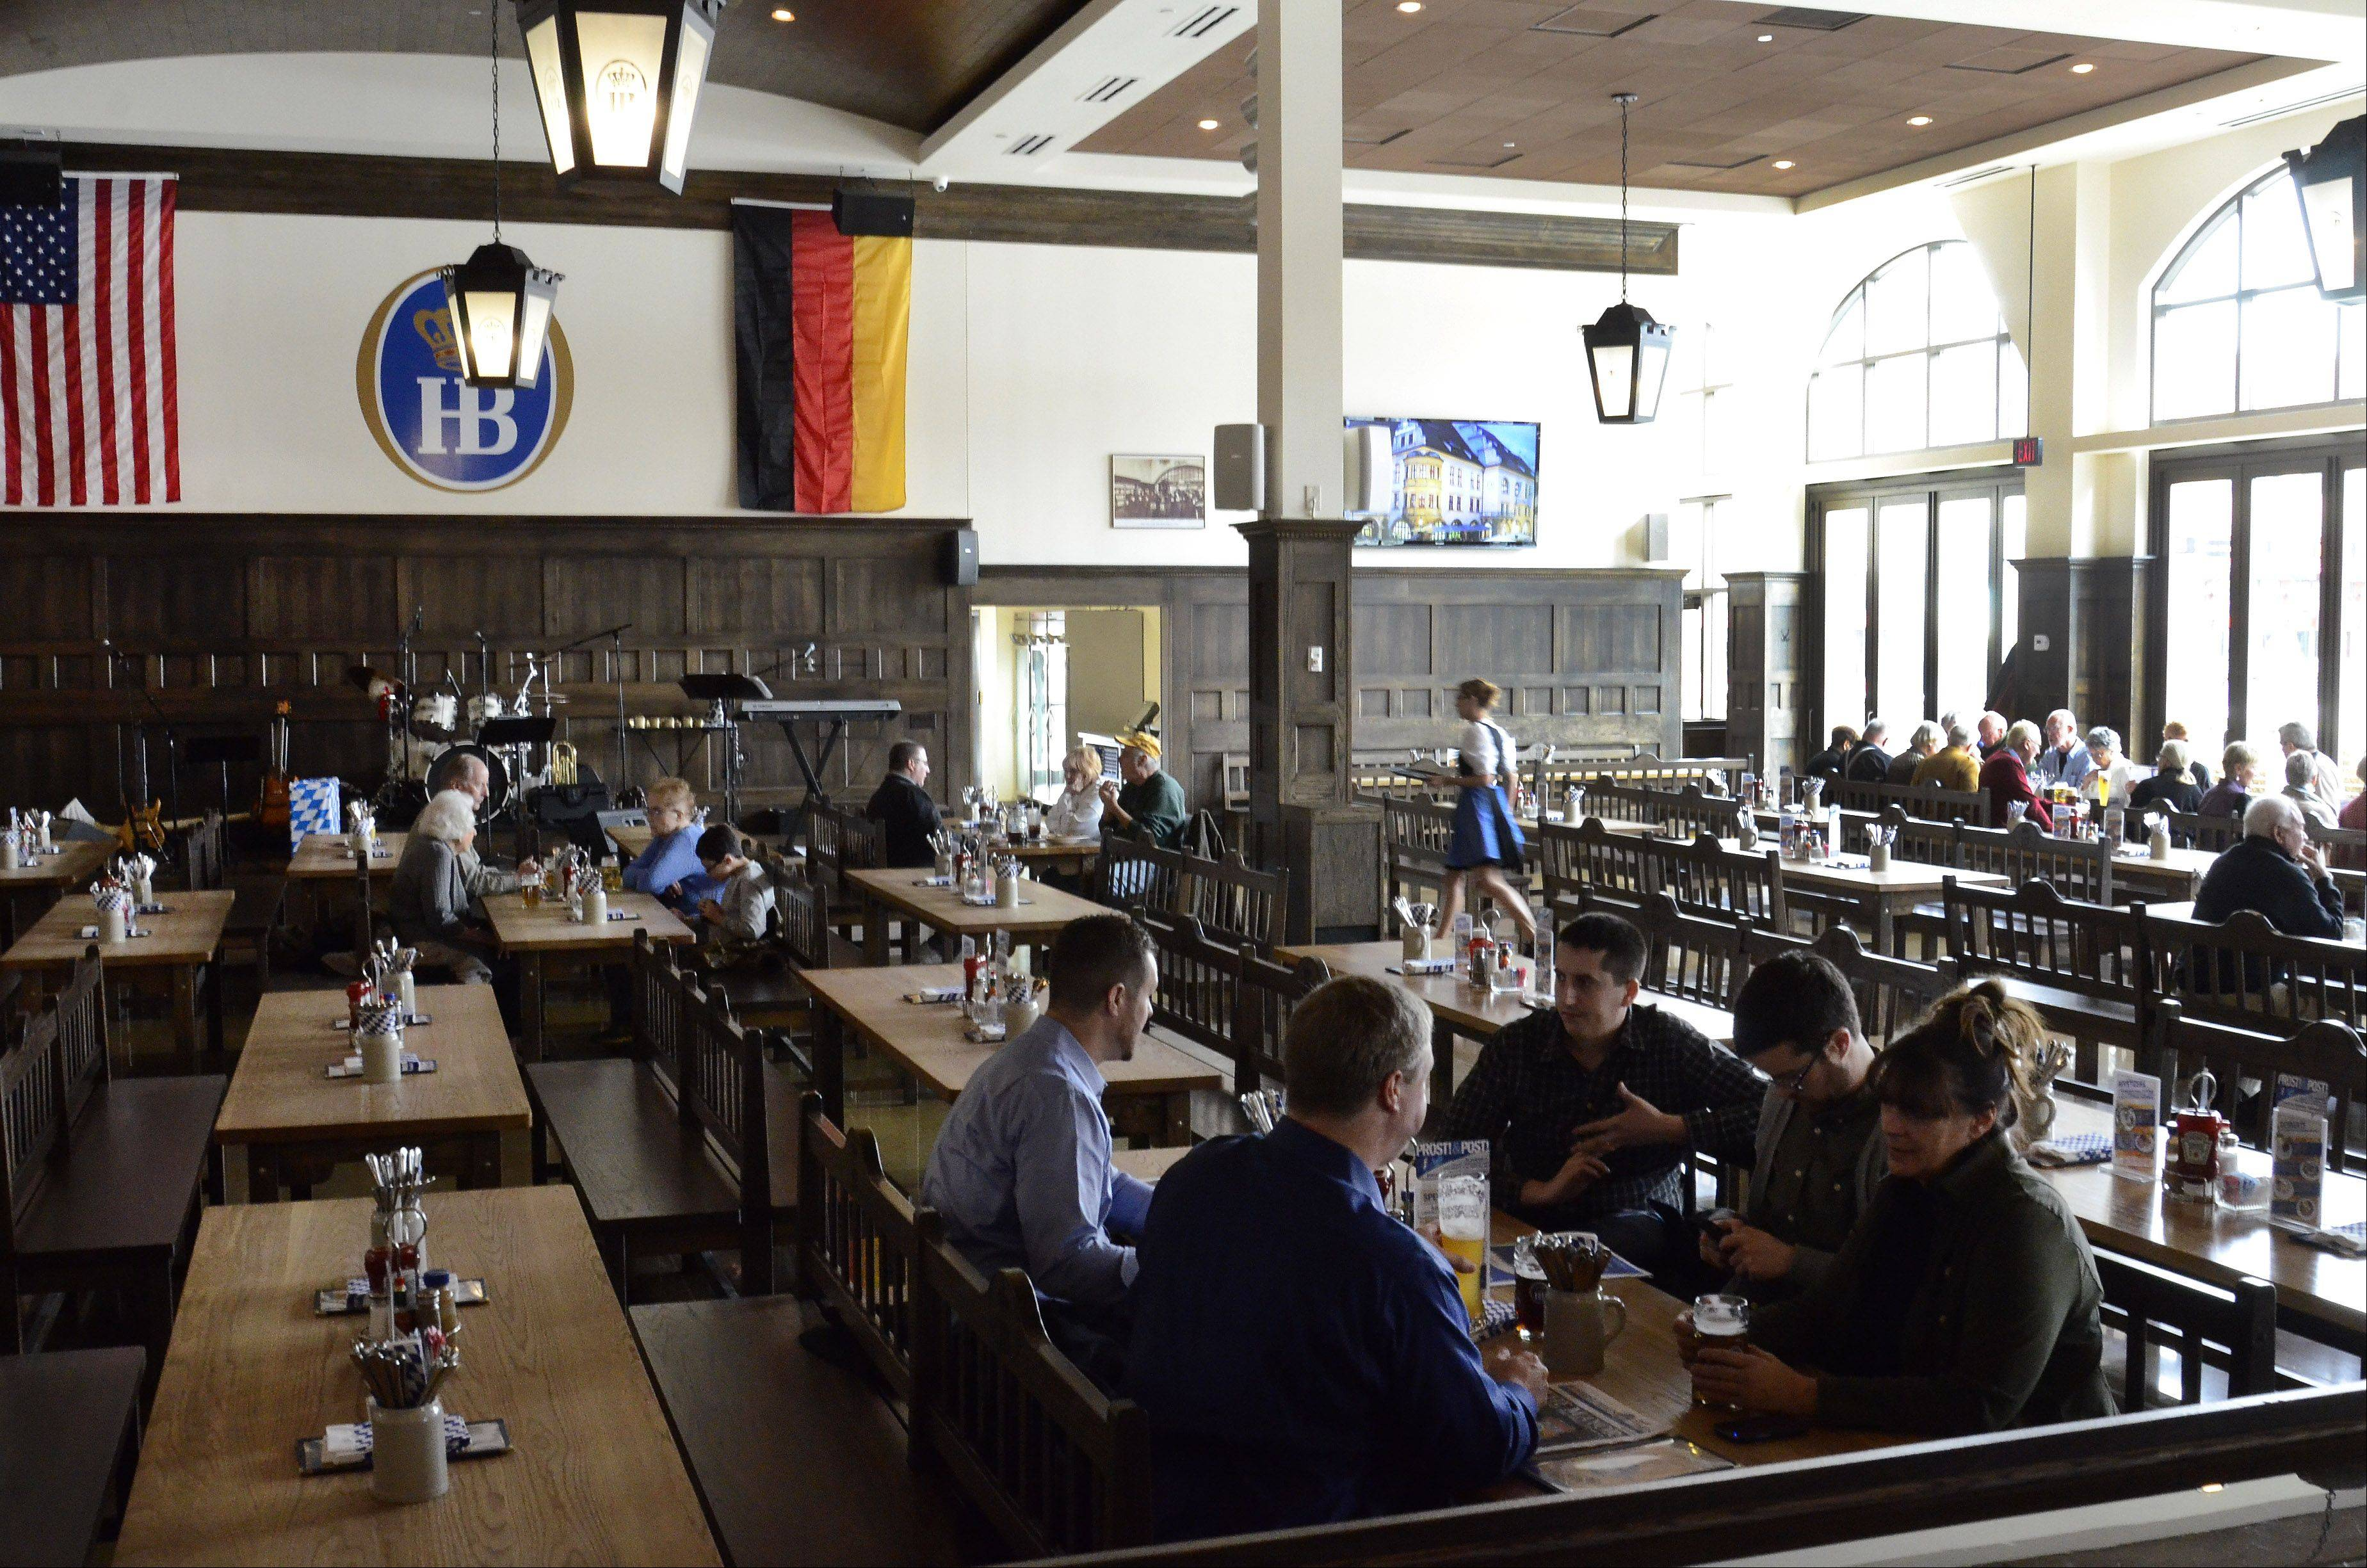 Hofbrauhaus is the latest restaurant to open at MB Financial Park in Rosemont.